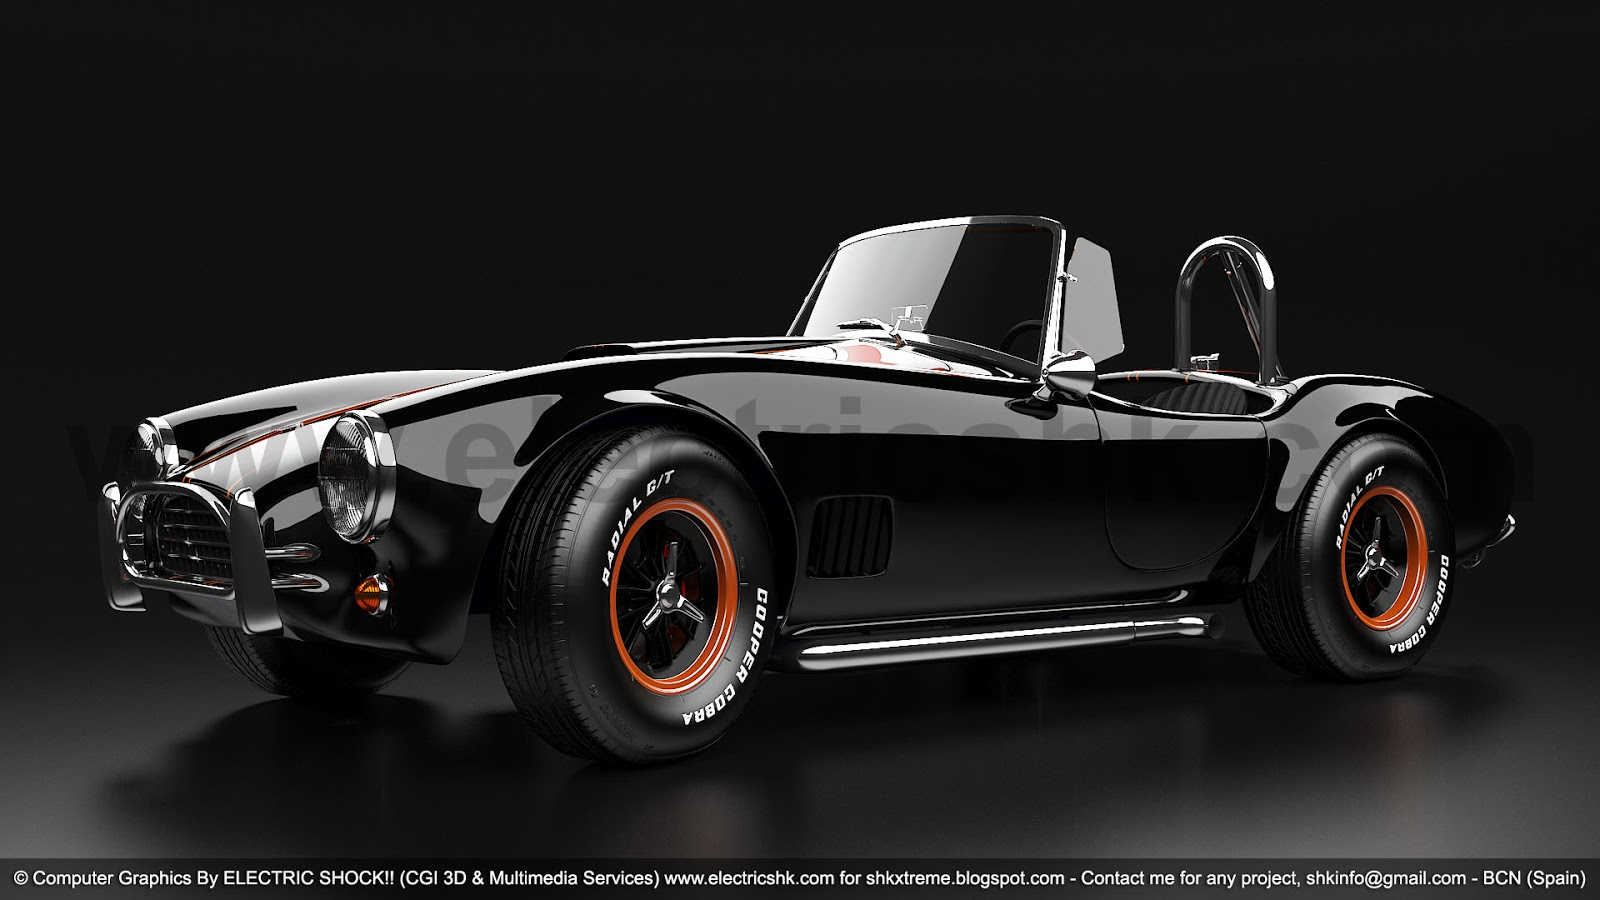 Shelby AC Cobra Black vista completa frontal lateral baja